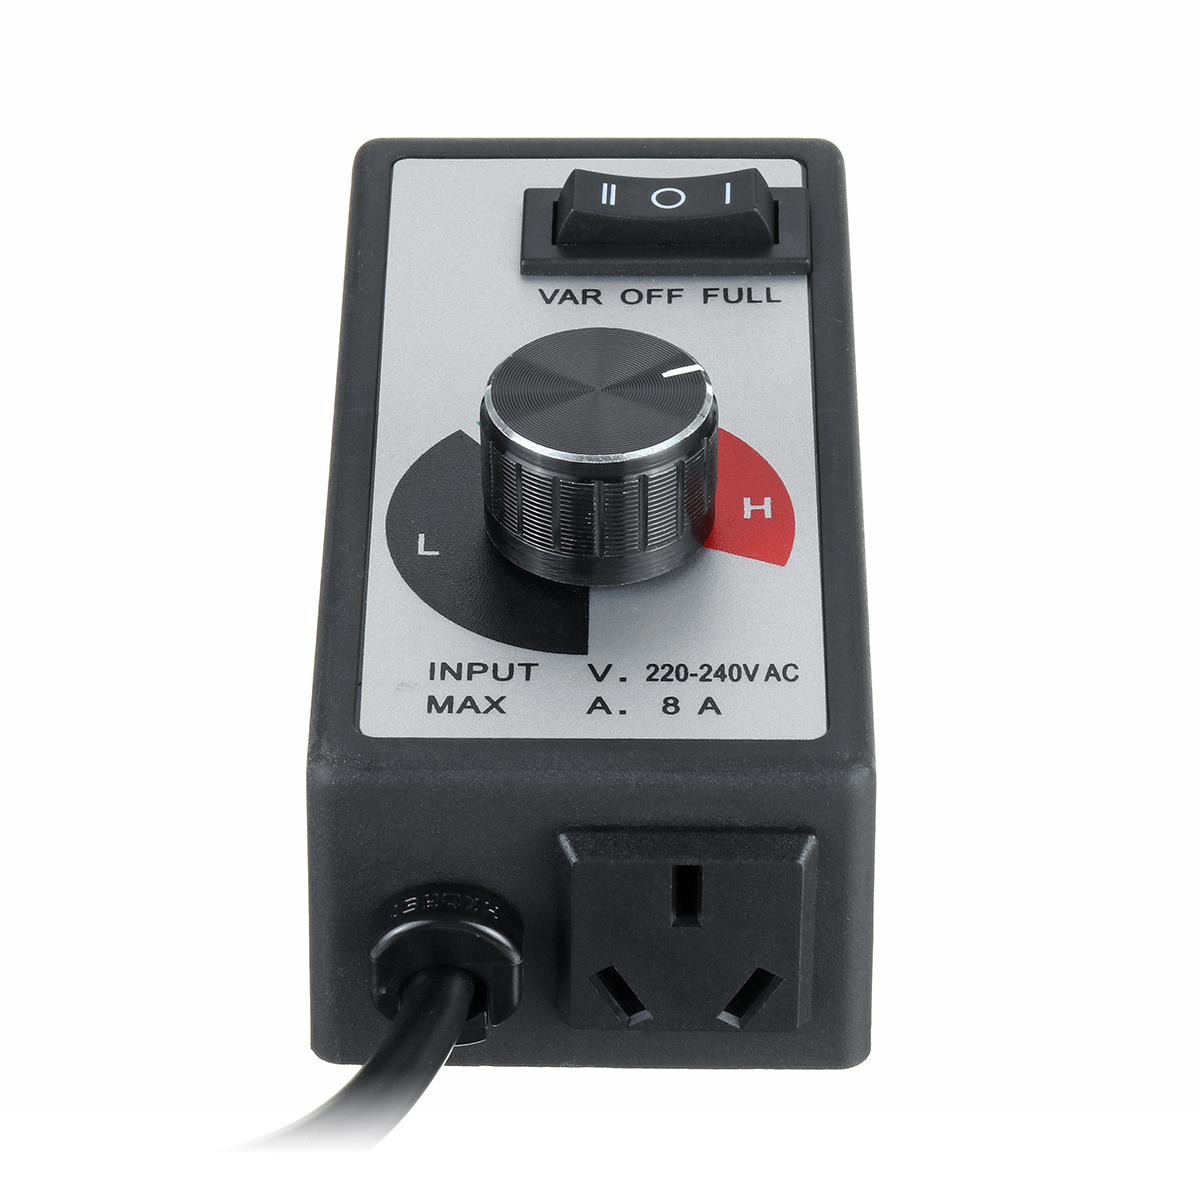 8A Fan Variable Speed Controller Router Electric Regulator Controls 220V-240V